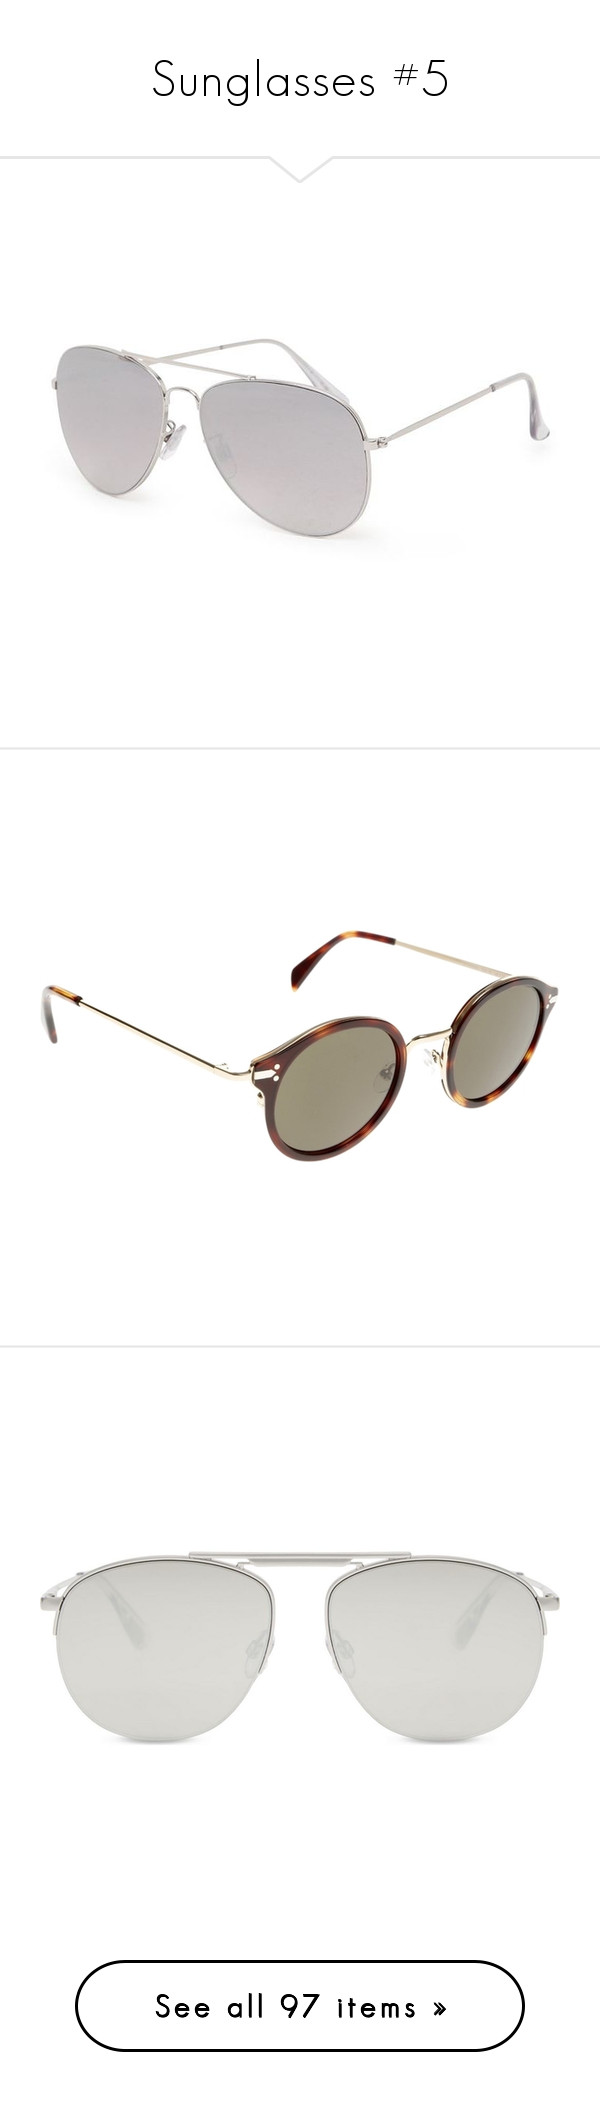 """""""Sunglasses #5"""" by marissa-91 ❤ liked on Polyvore featuring accessories, eyewear, sunglasses, glasses, silver mirror sunglasses, mirrored aviators, mirrored glasses, mirror sunglasses, silver sunglasses and brown"""